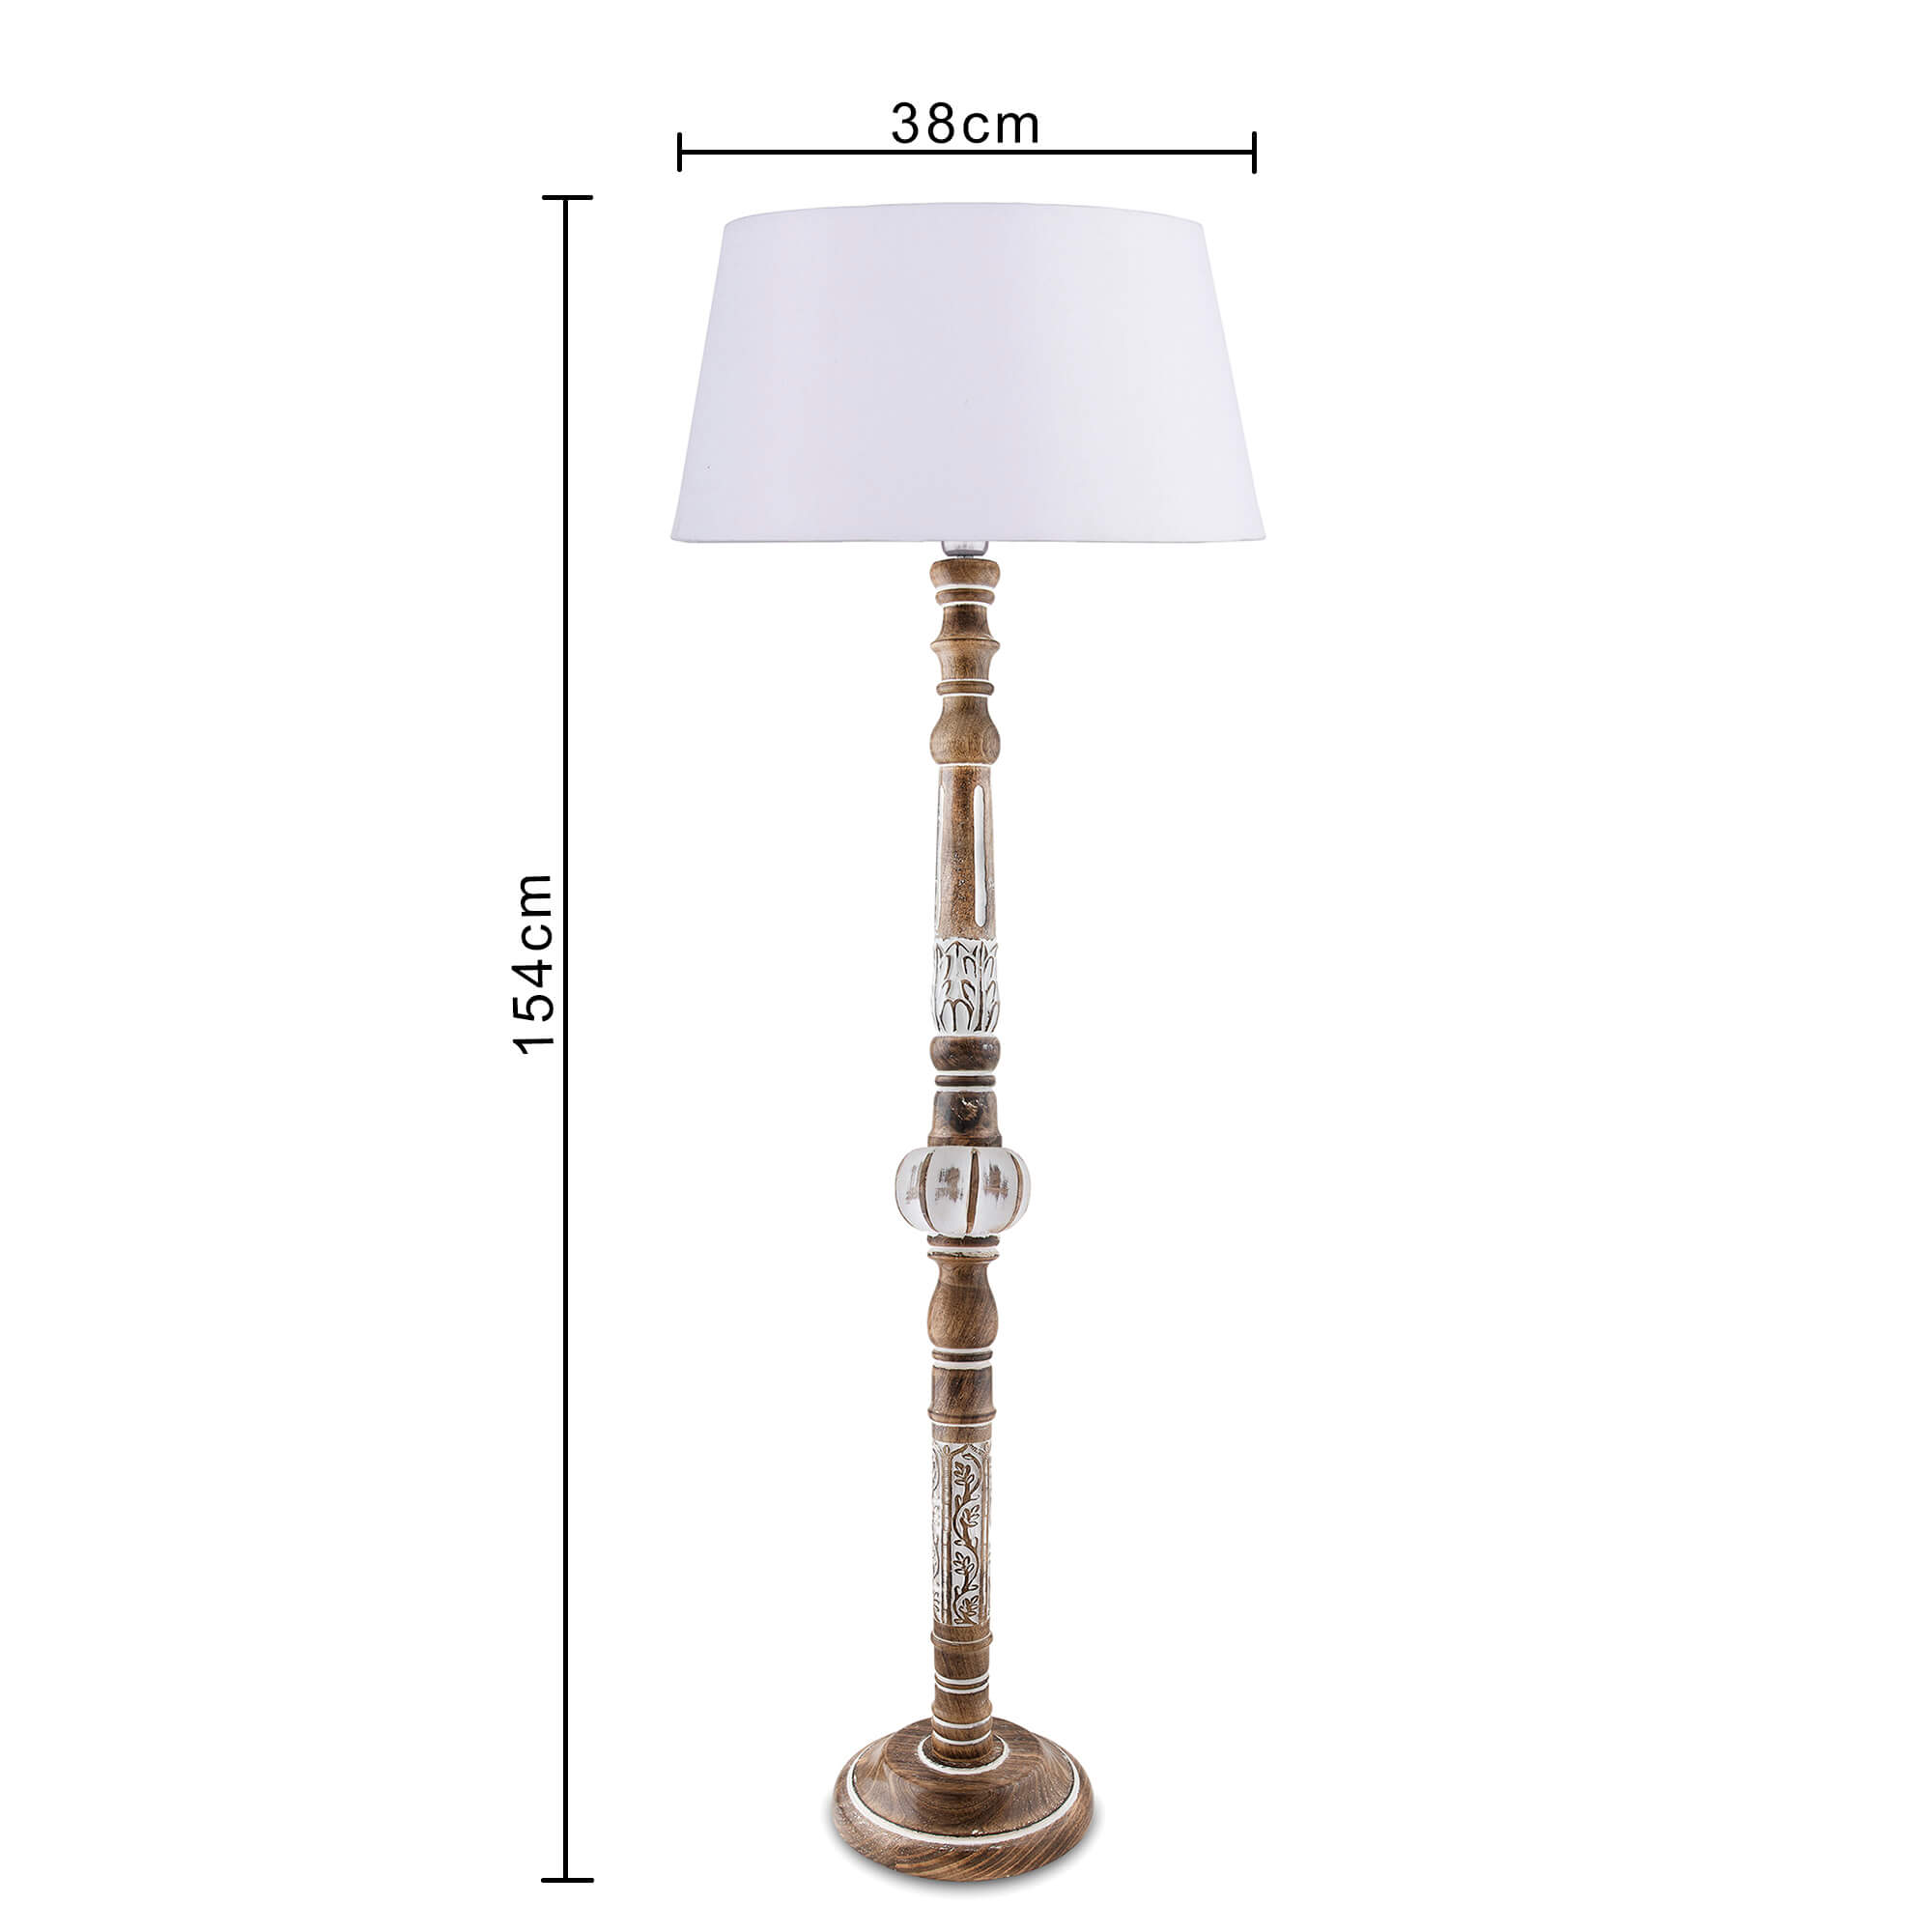 Royal Carving Antique White Finish Wooden Floor Lamp with White Shade